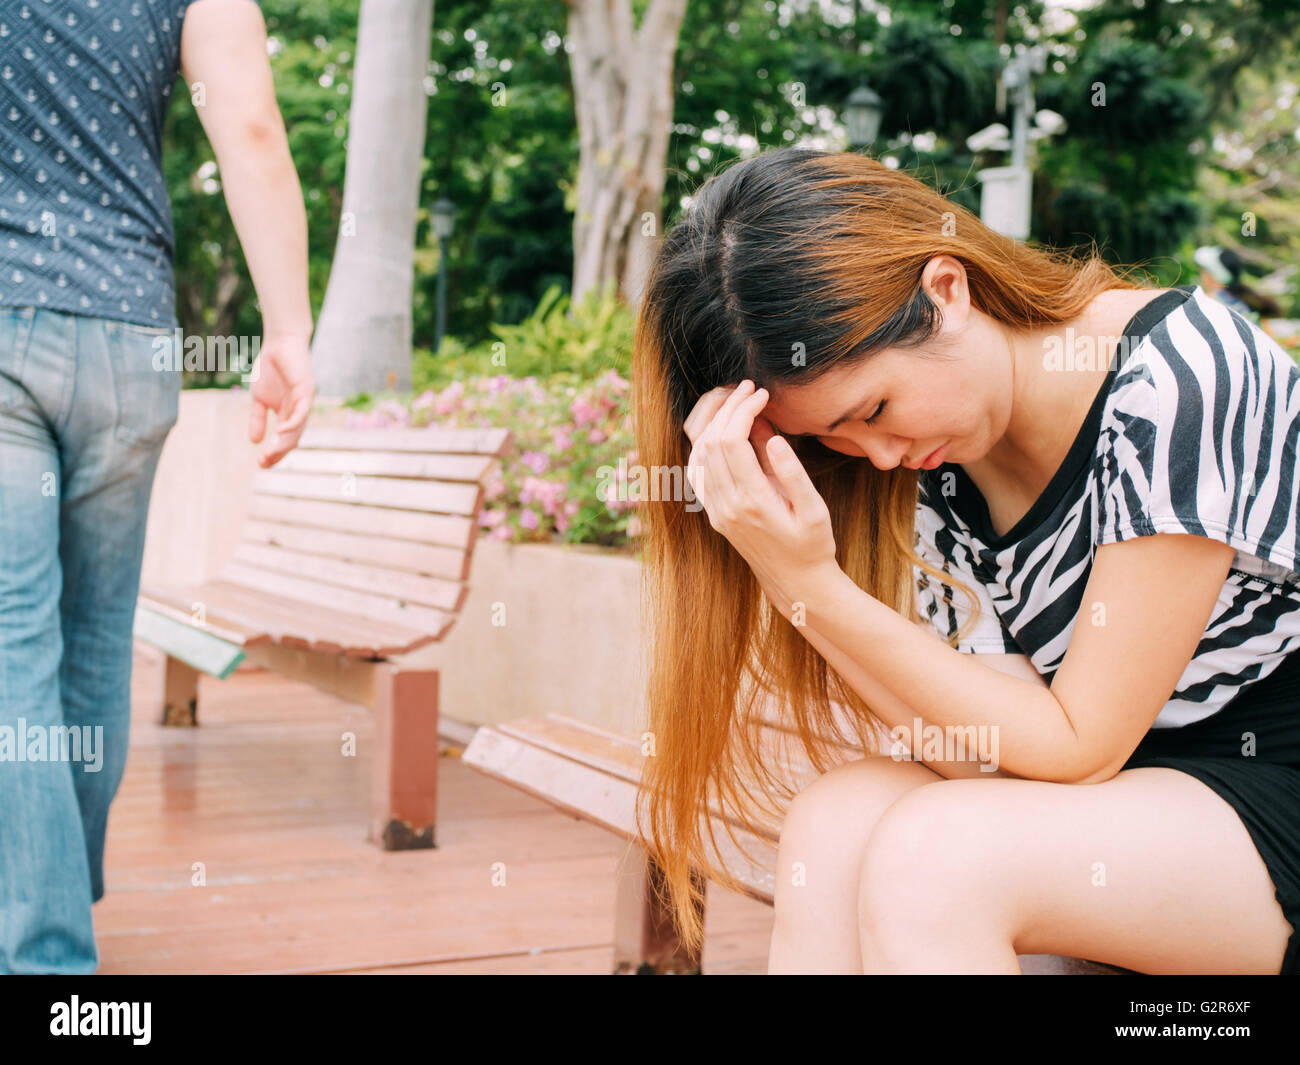 Breakup of a couple with sad girlfriend and boyfriend walking away with city in the background - Stock Image